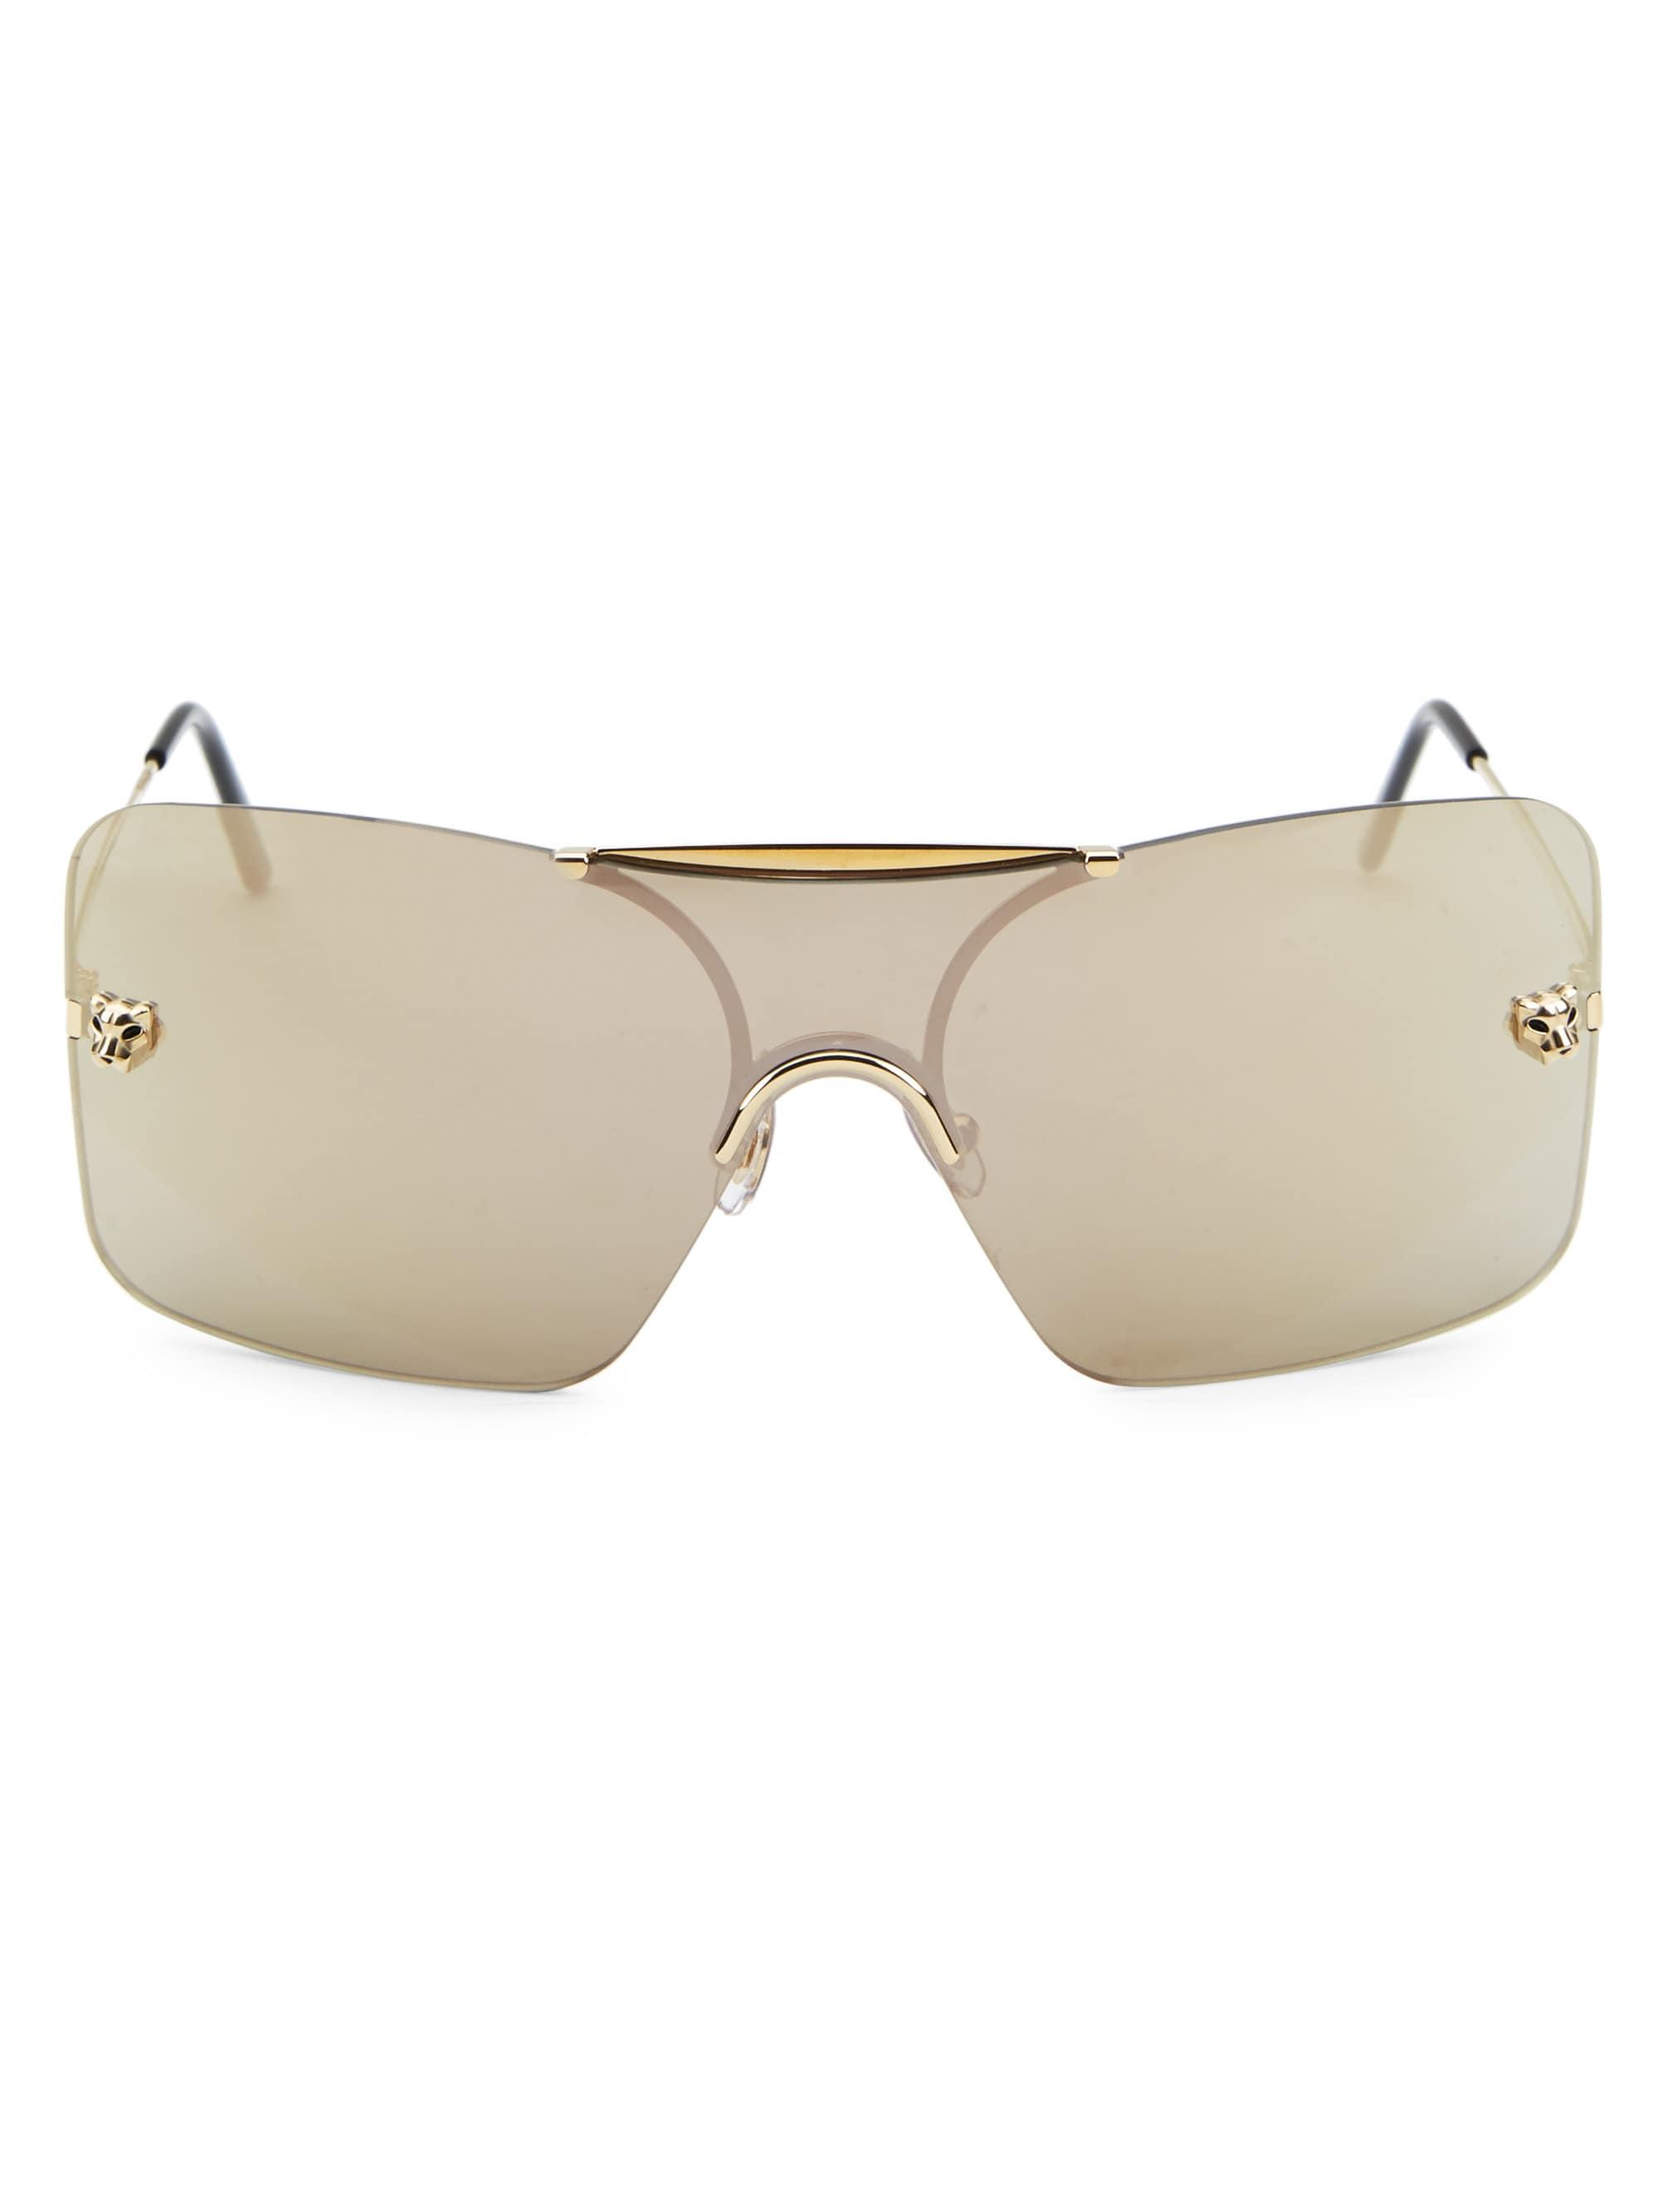 e417eefe39 Cartier Women s Panthere Shield Sunglasses - Champagne - Lyst